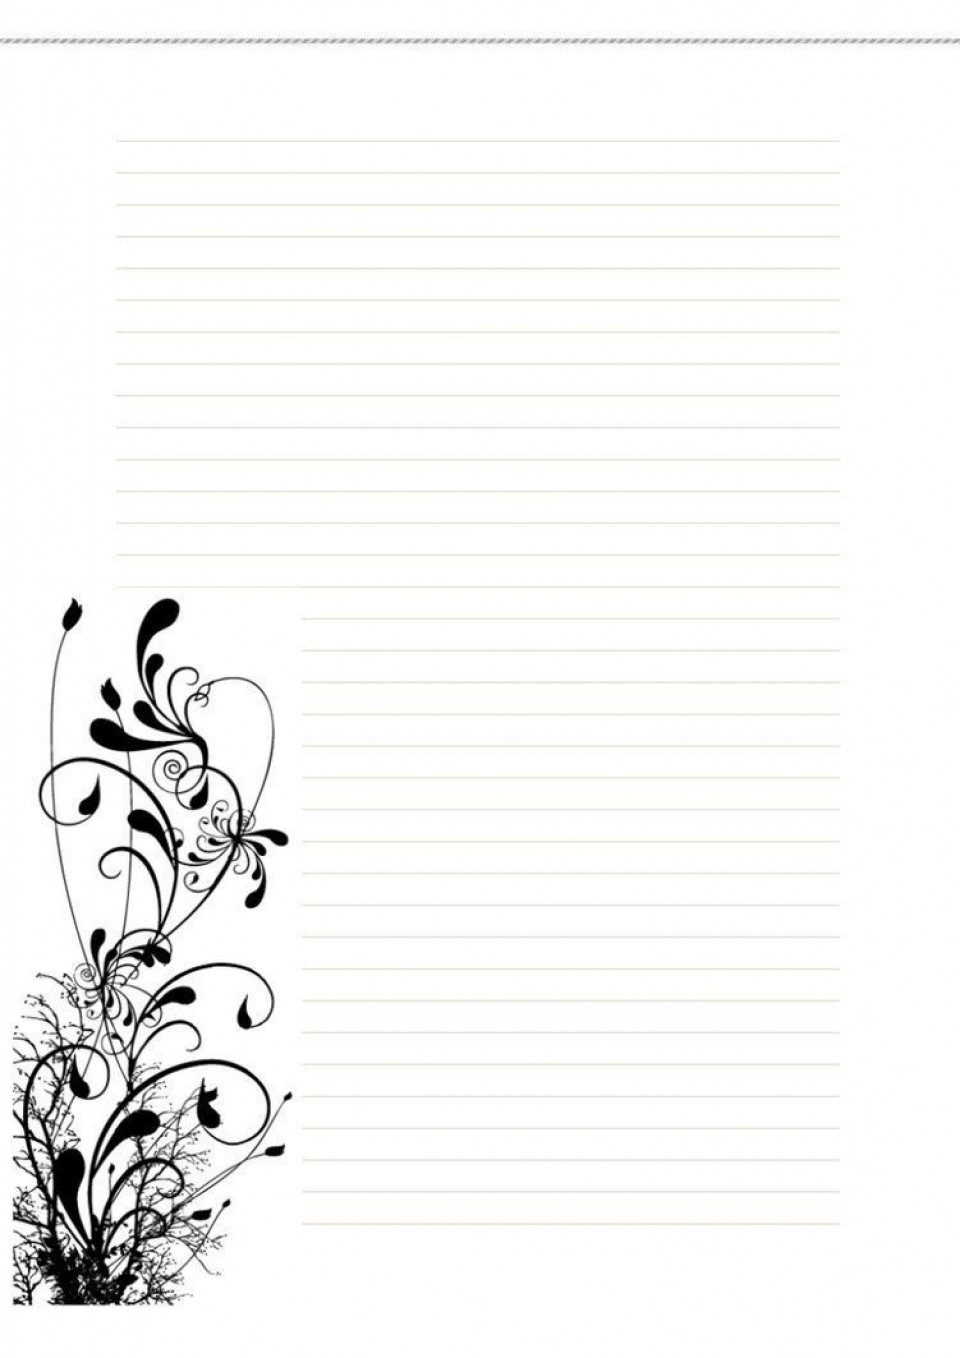 006 Incredible Free Printable Stationery Paper Template Image 960